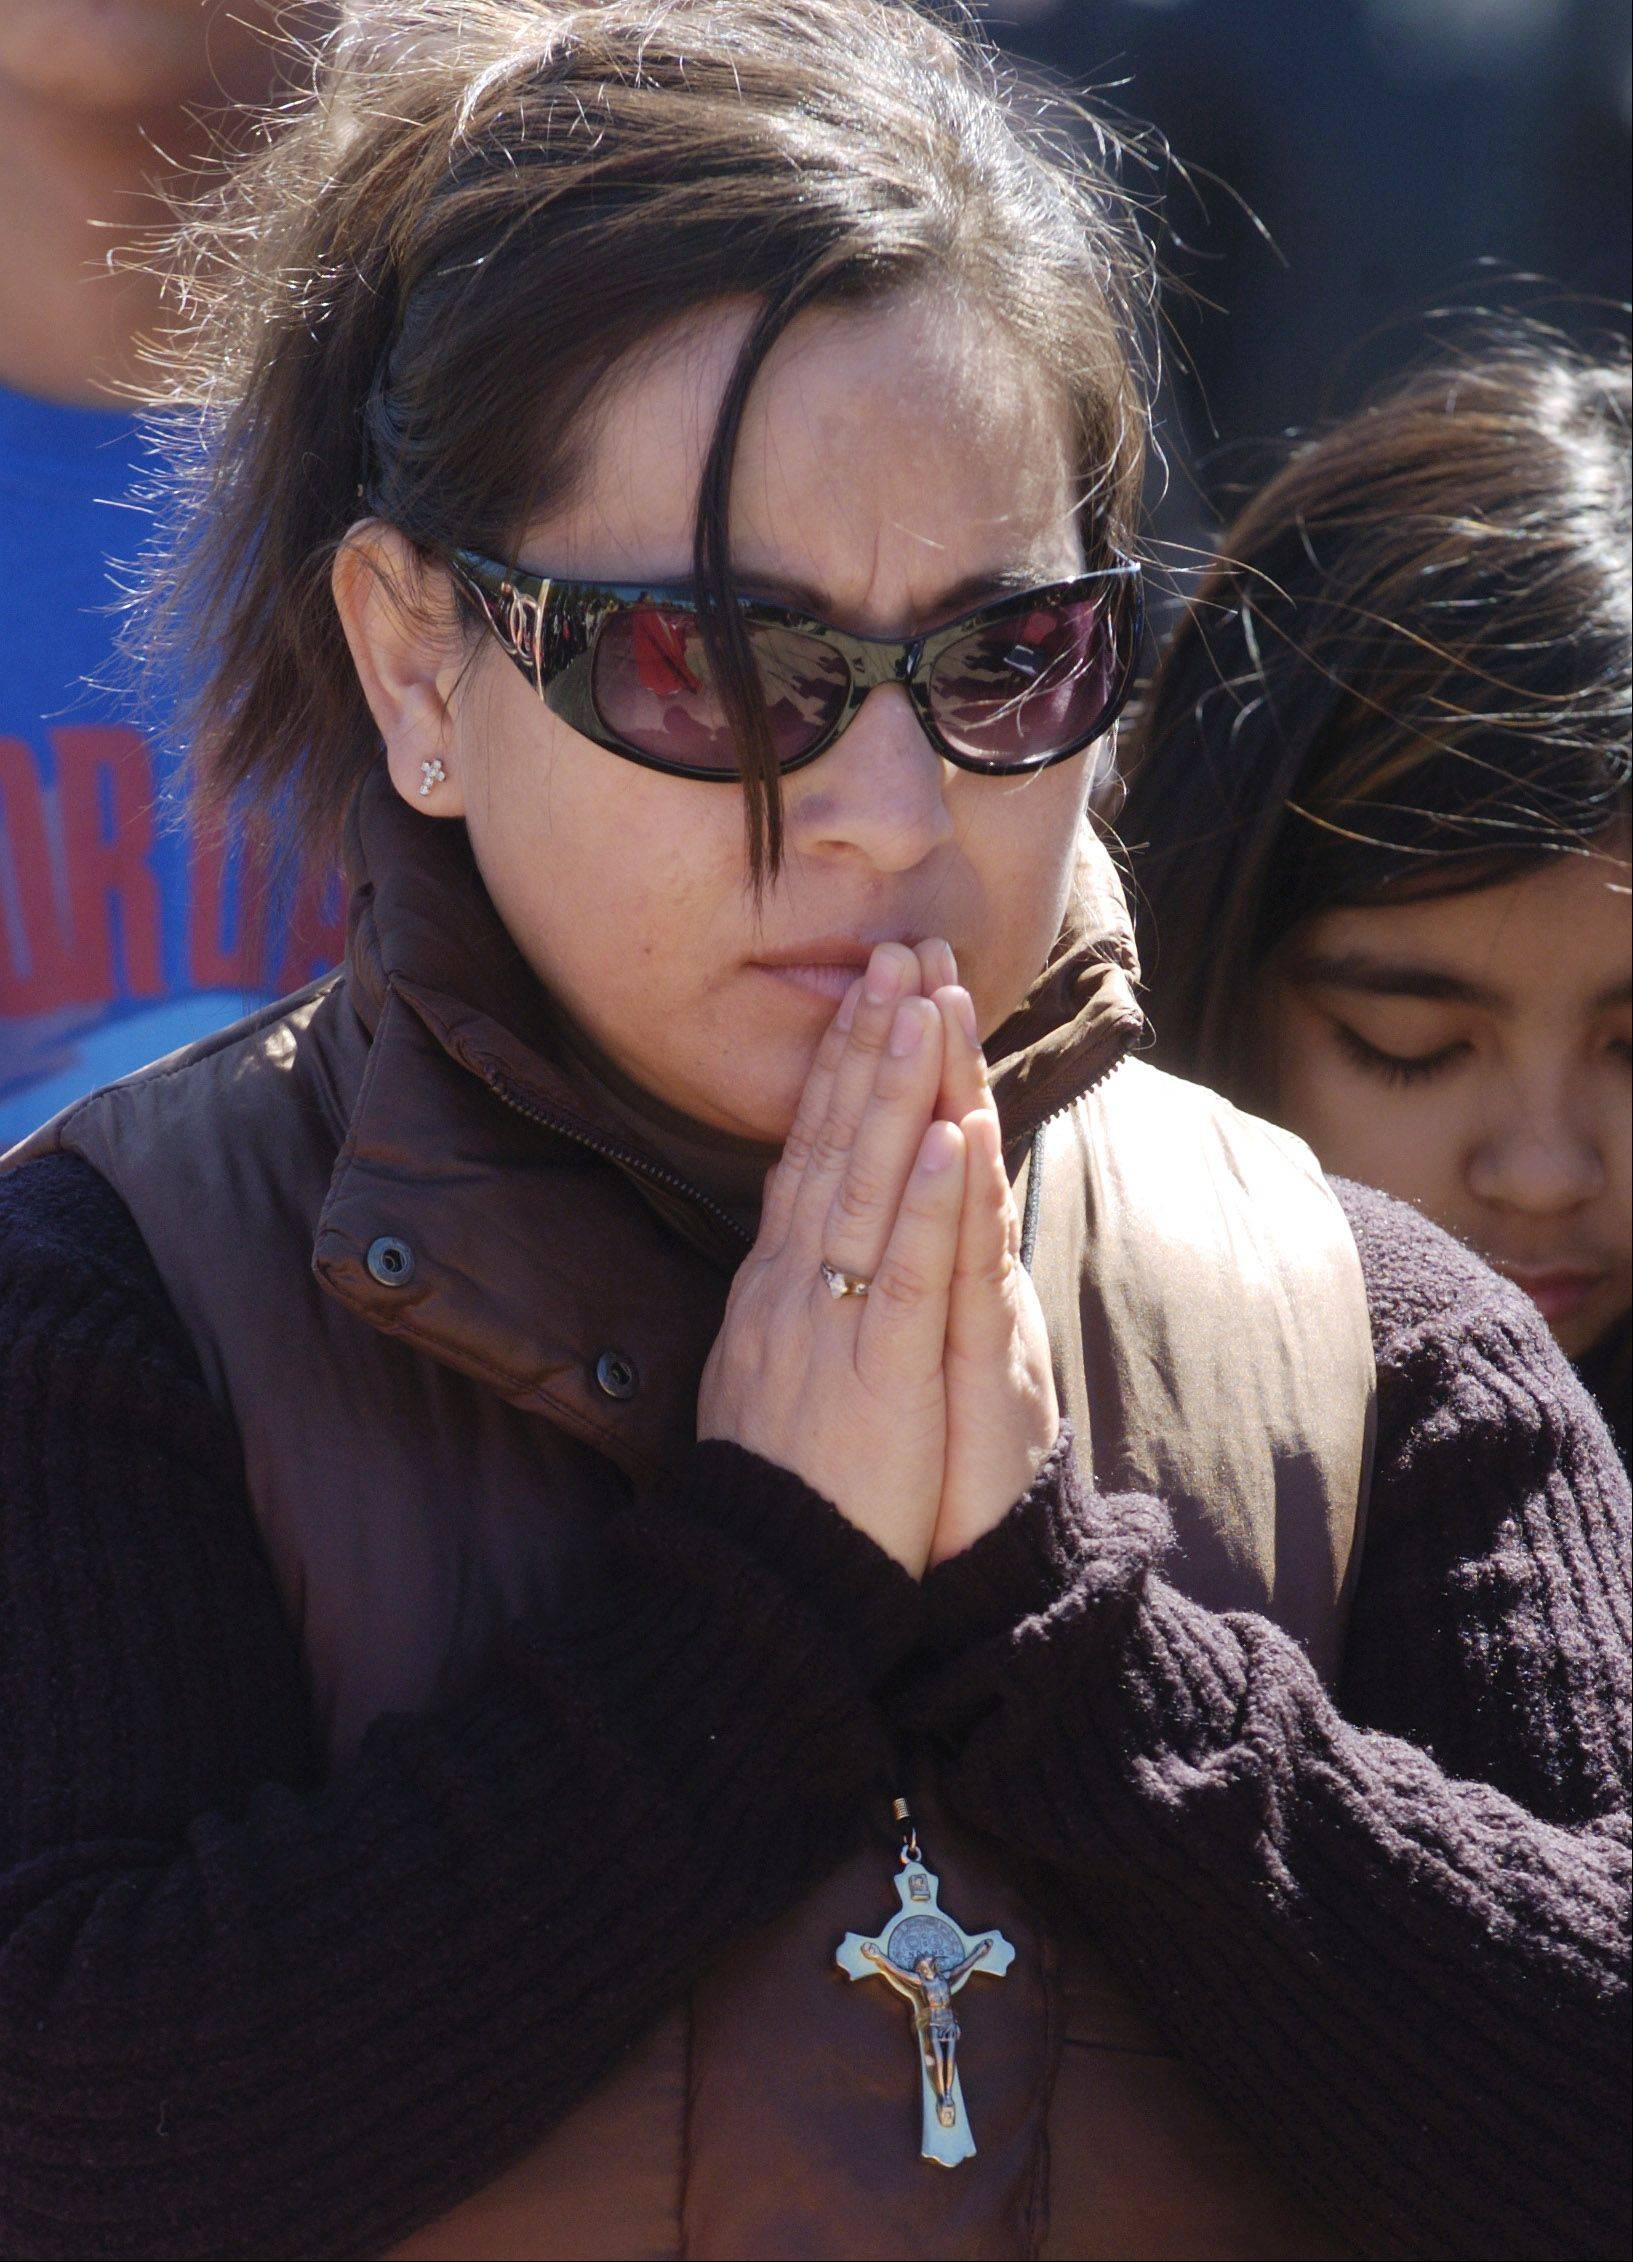 Carmen Mendez of Palatine prays during the live Way of the Cross procession between St. Thomas of Villanova in Palatine and Mission San Juan Diego in Arlington Heights on Good Friday.